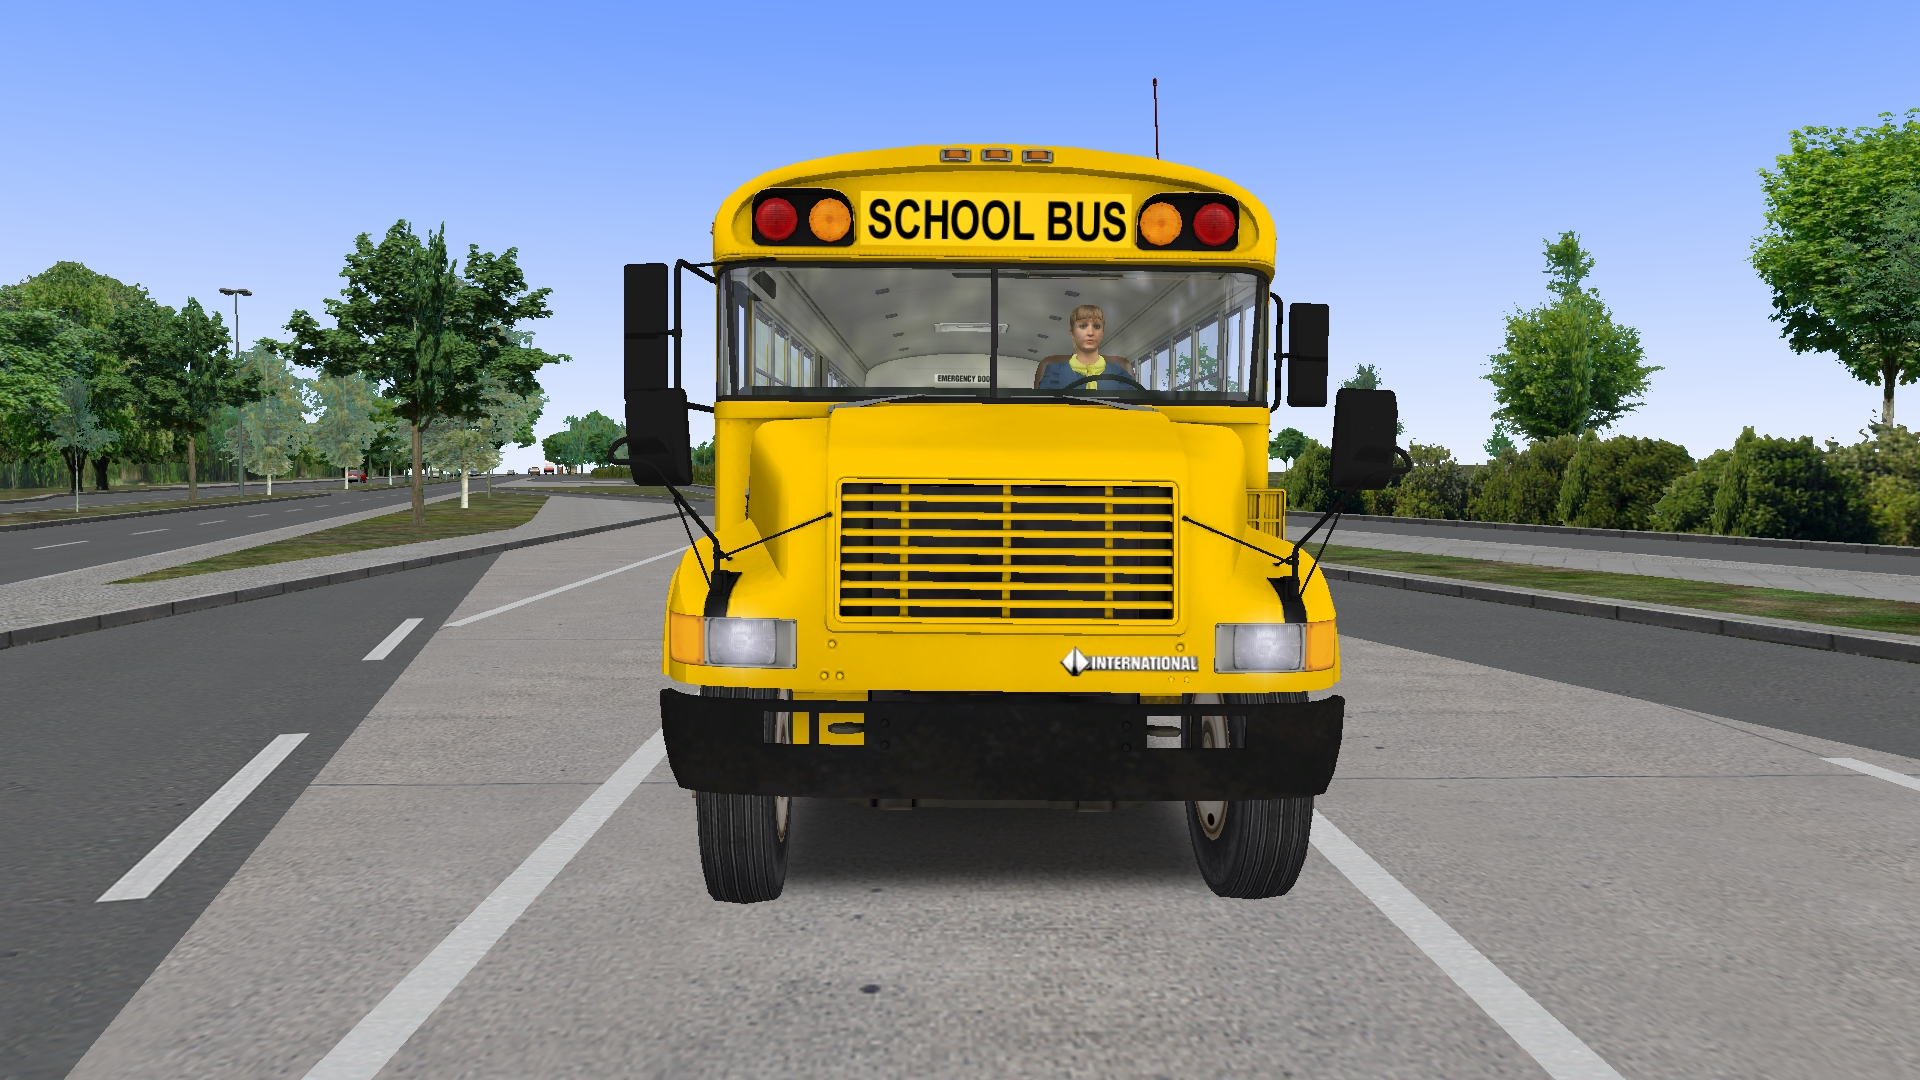 OMSI International Blue Bird School Bus Miami, Florida, Dade County